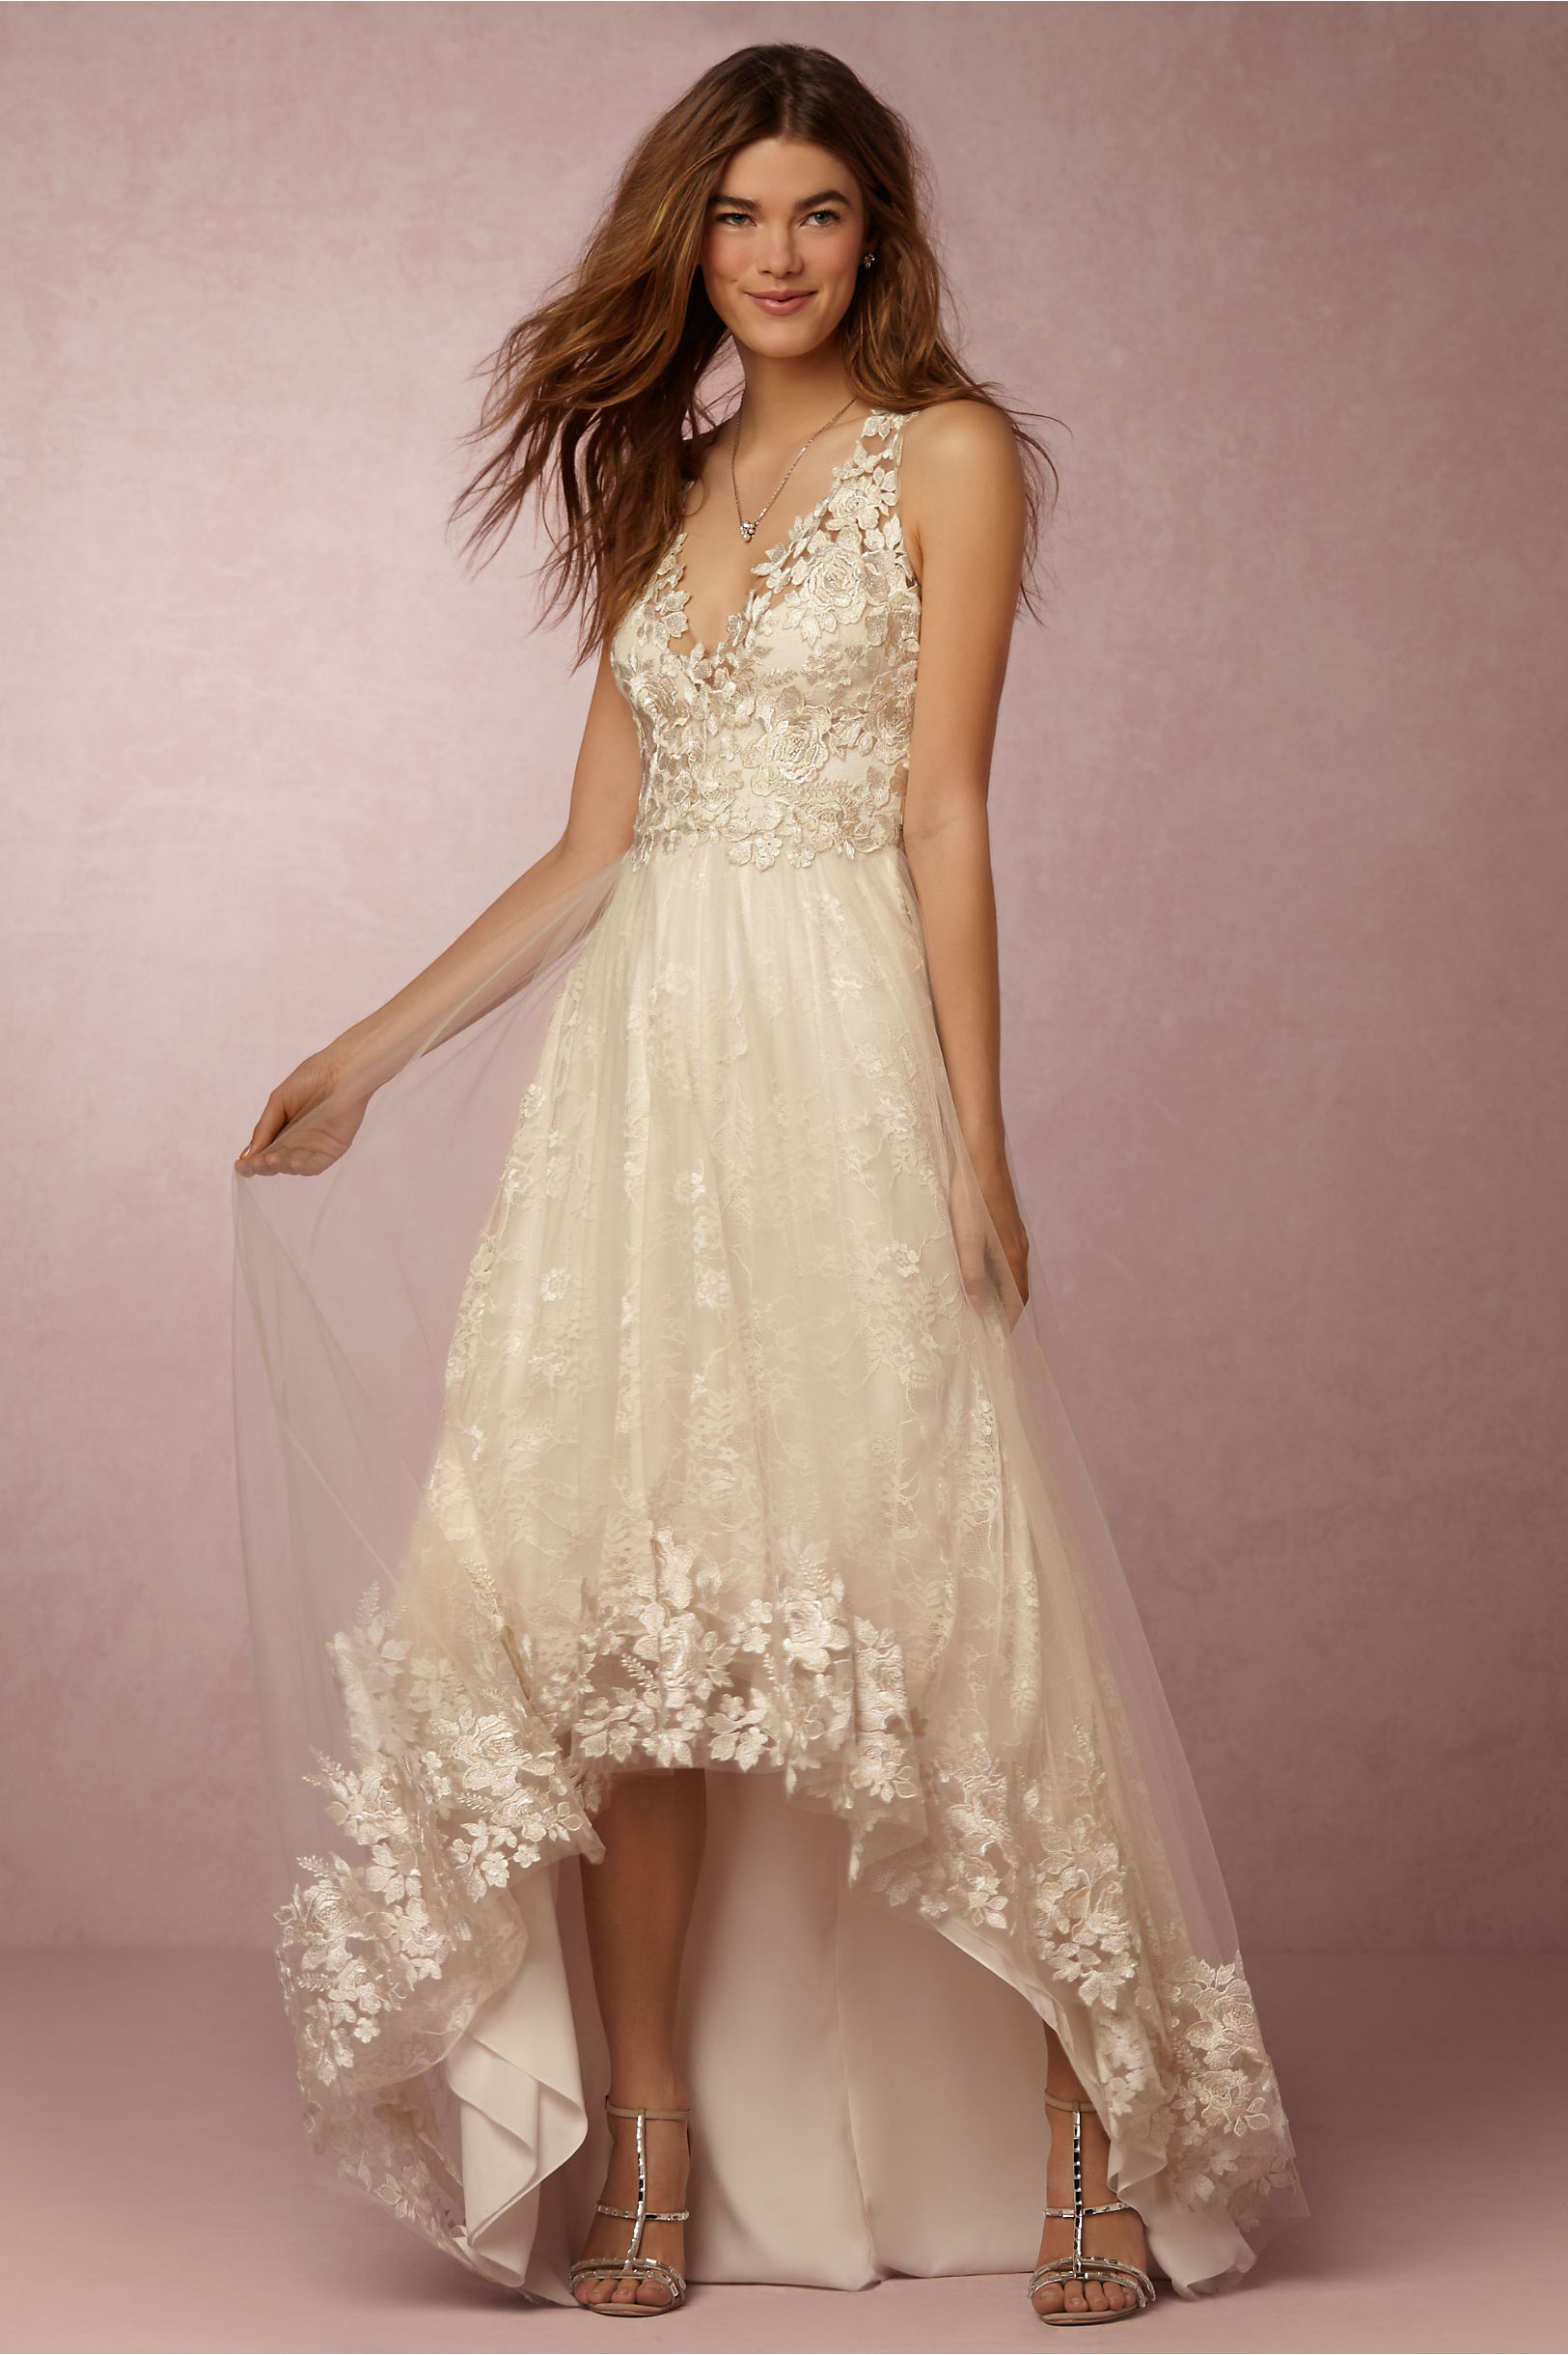 opal gown wedding gown Marchesa Notte Ivory Opal Gown BHLDN